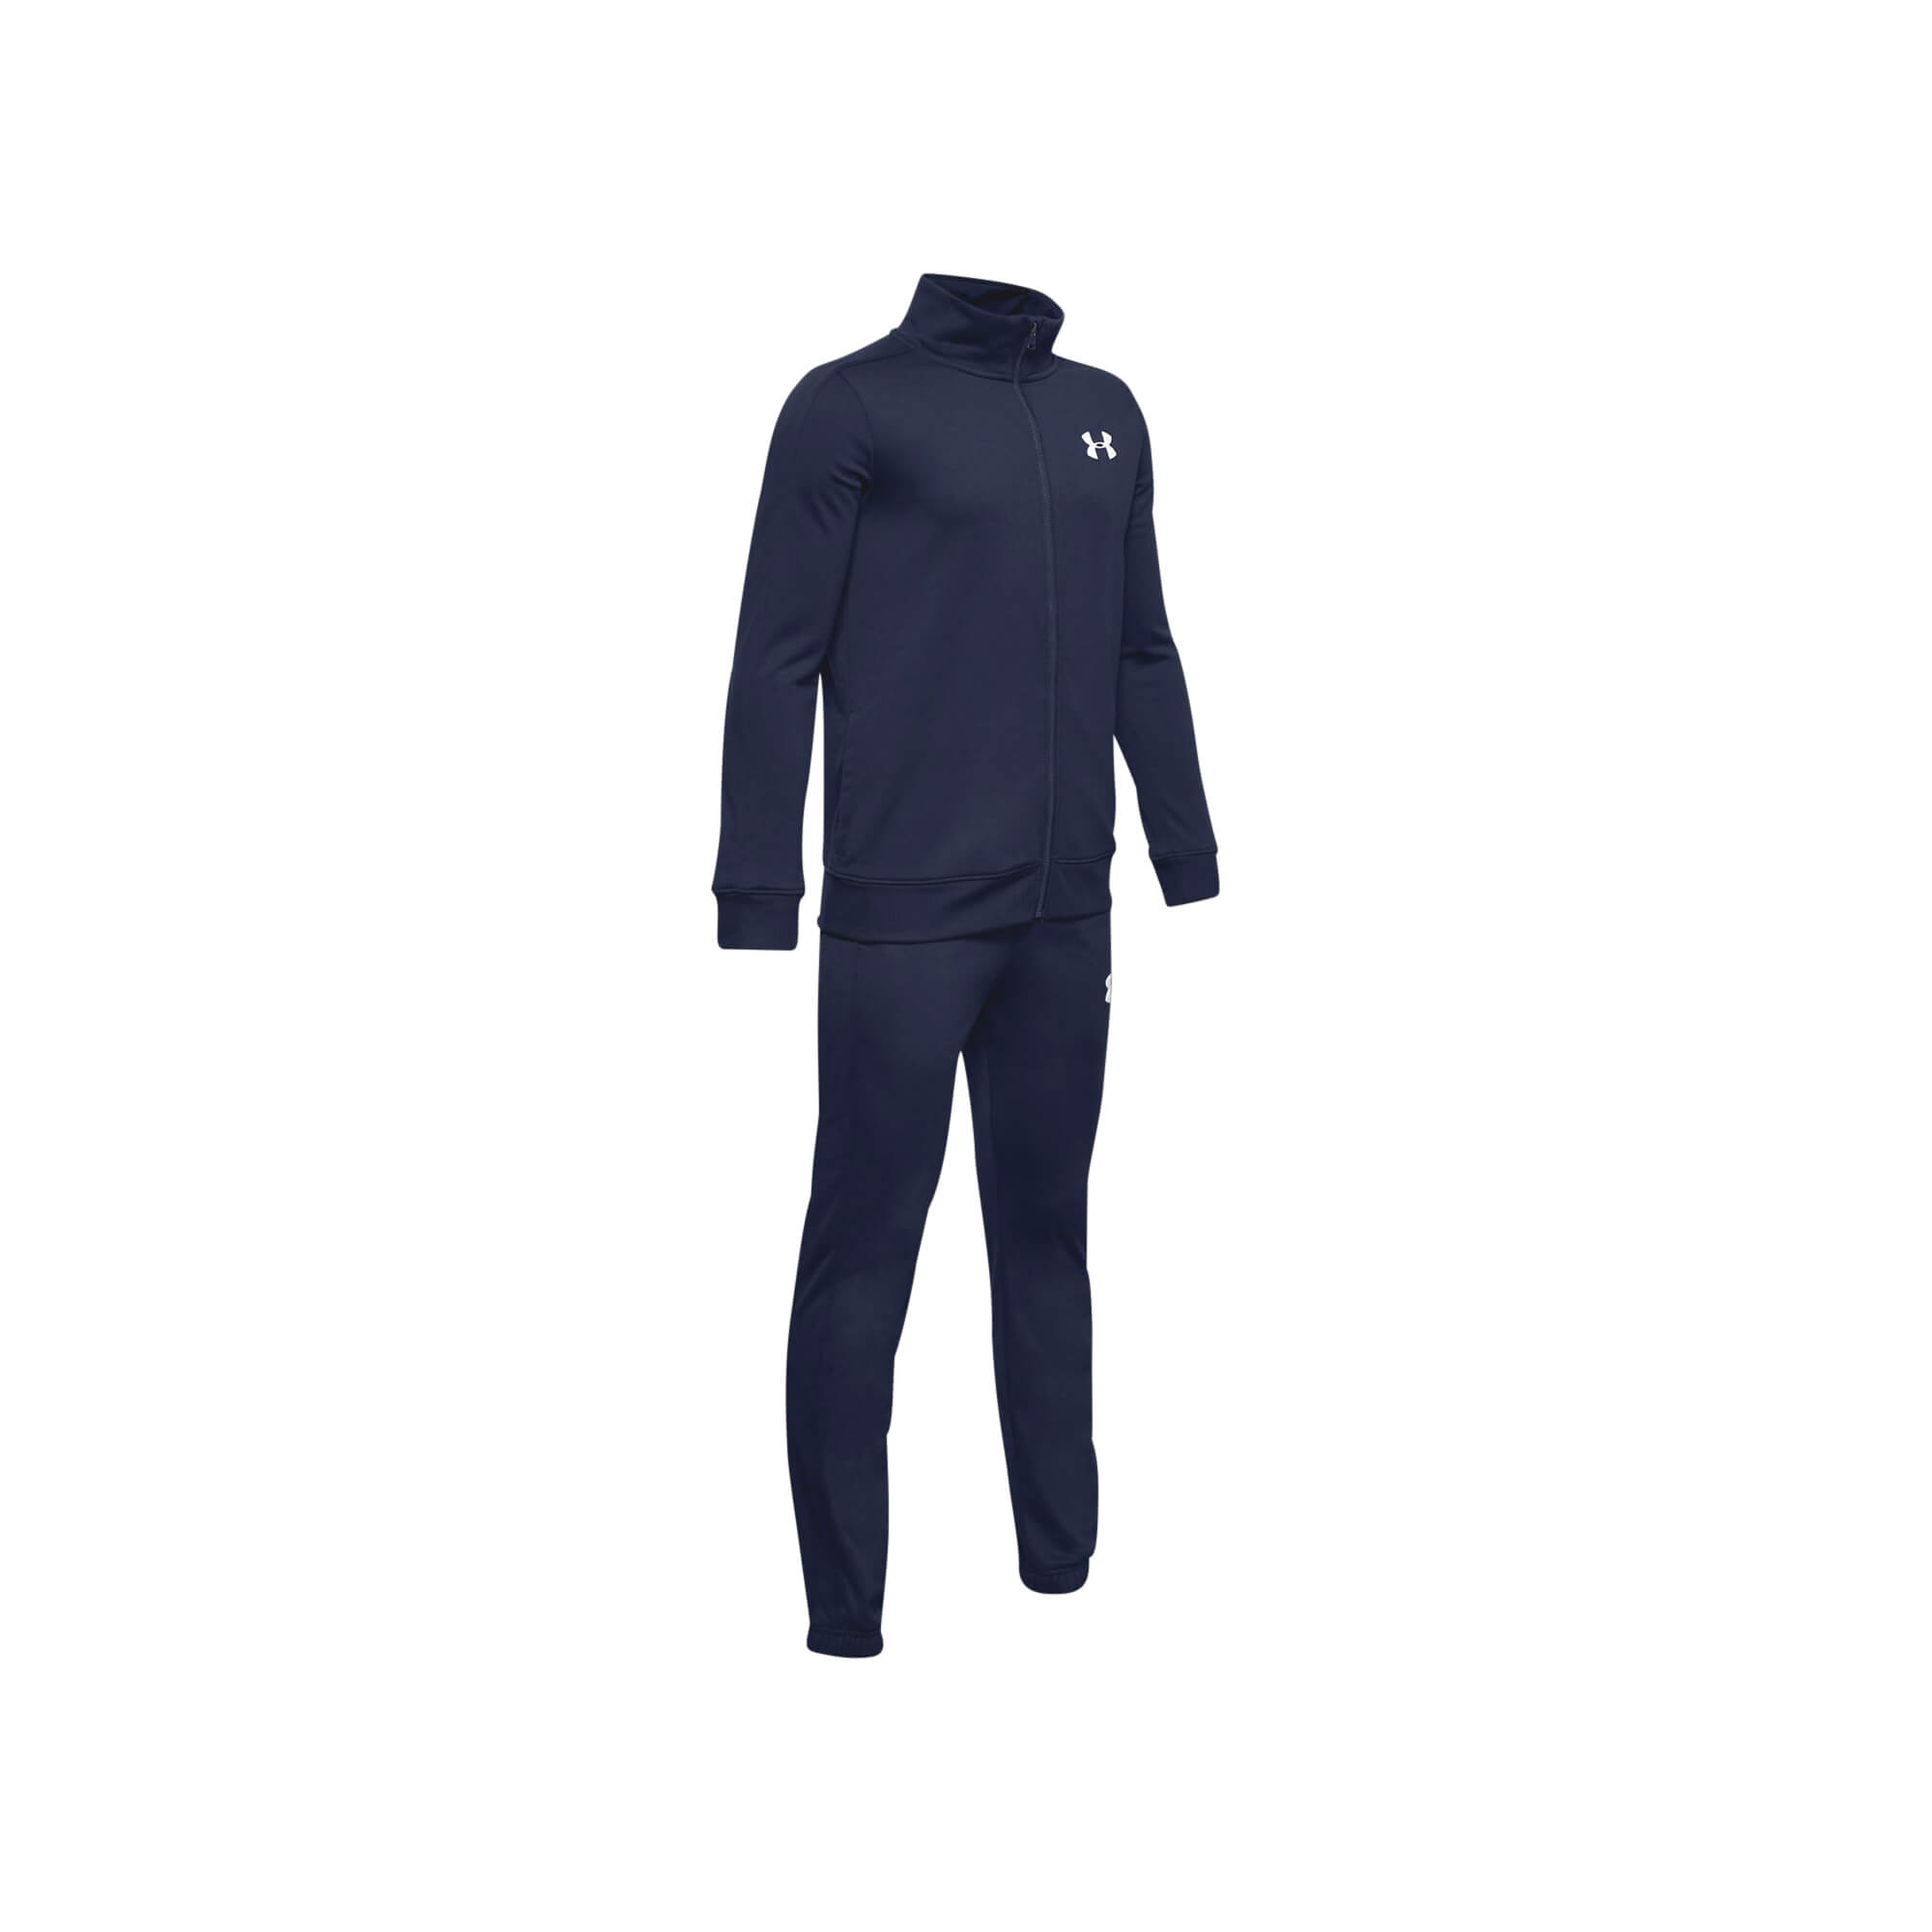 Knit Track Suit copii imagine produs